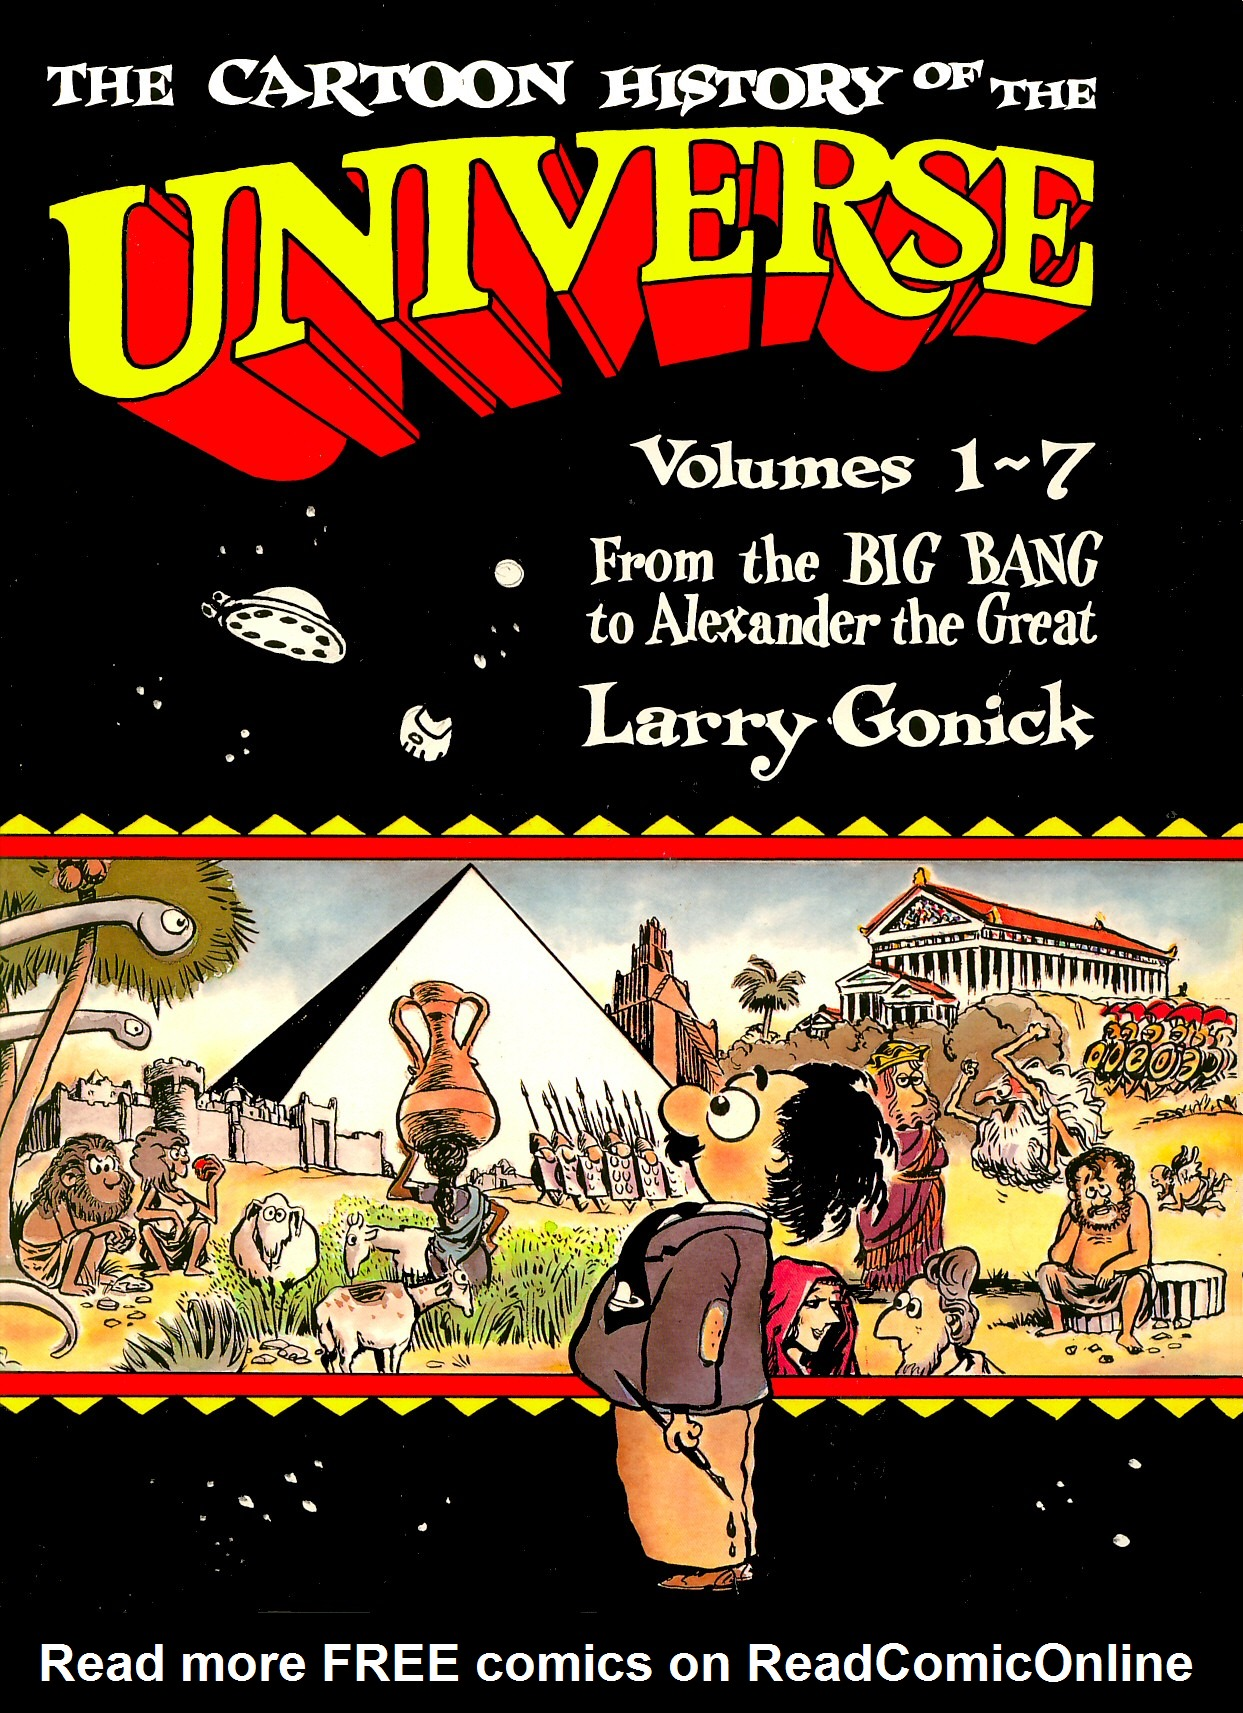 Read online The Cartoon History of the Universe comic -  Issue #1 - 1